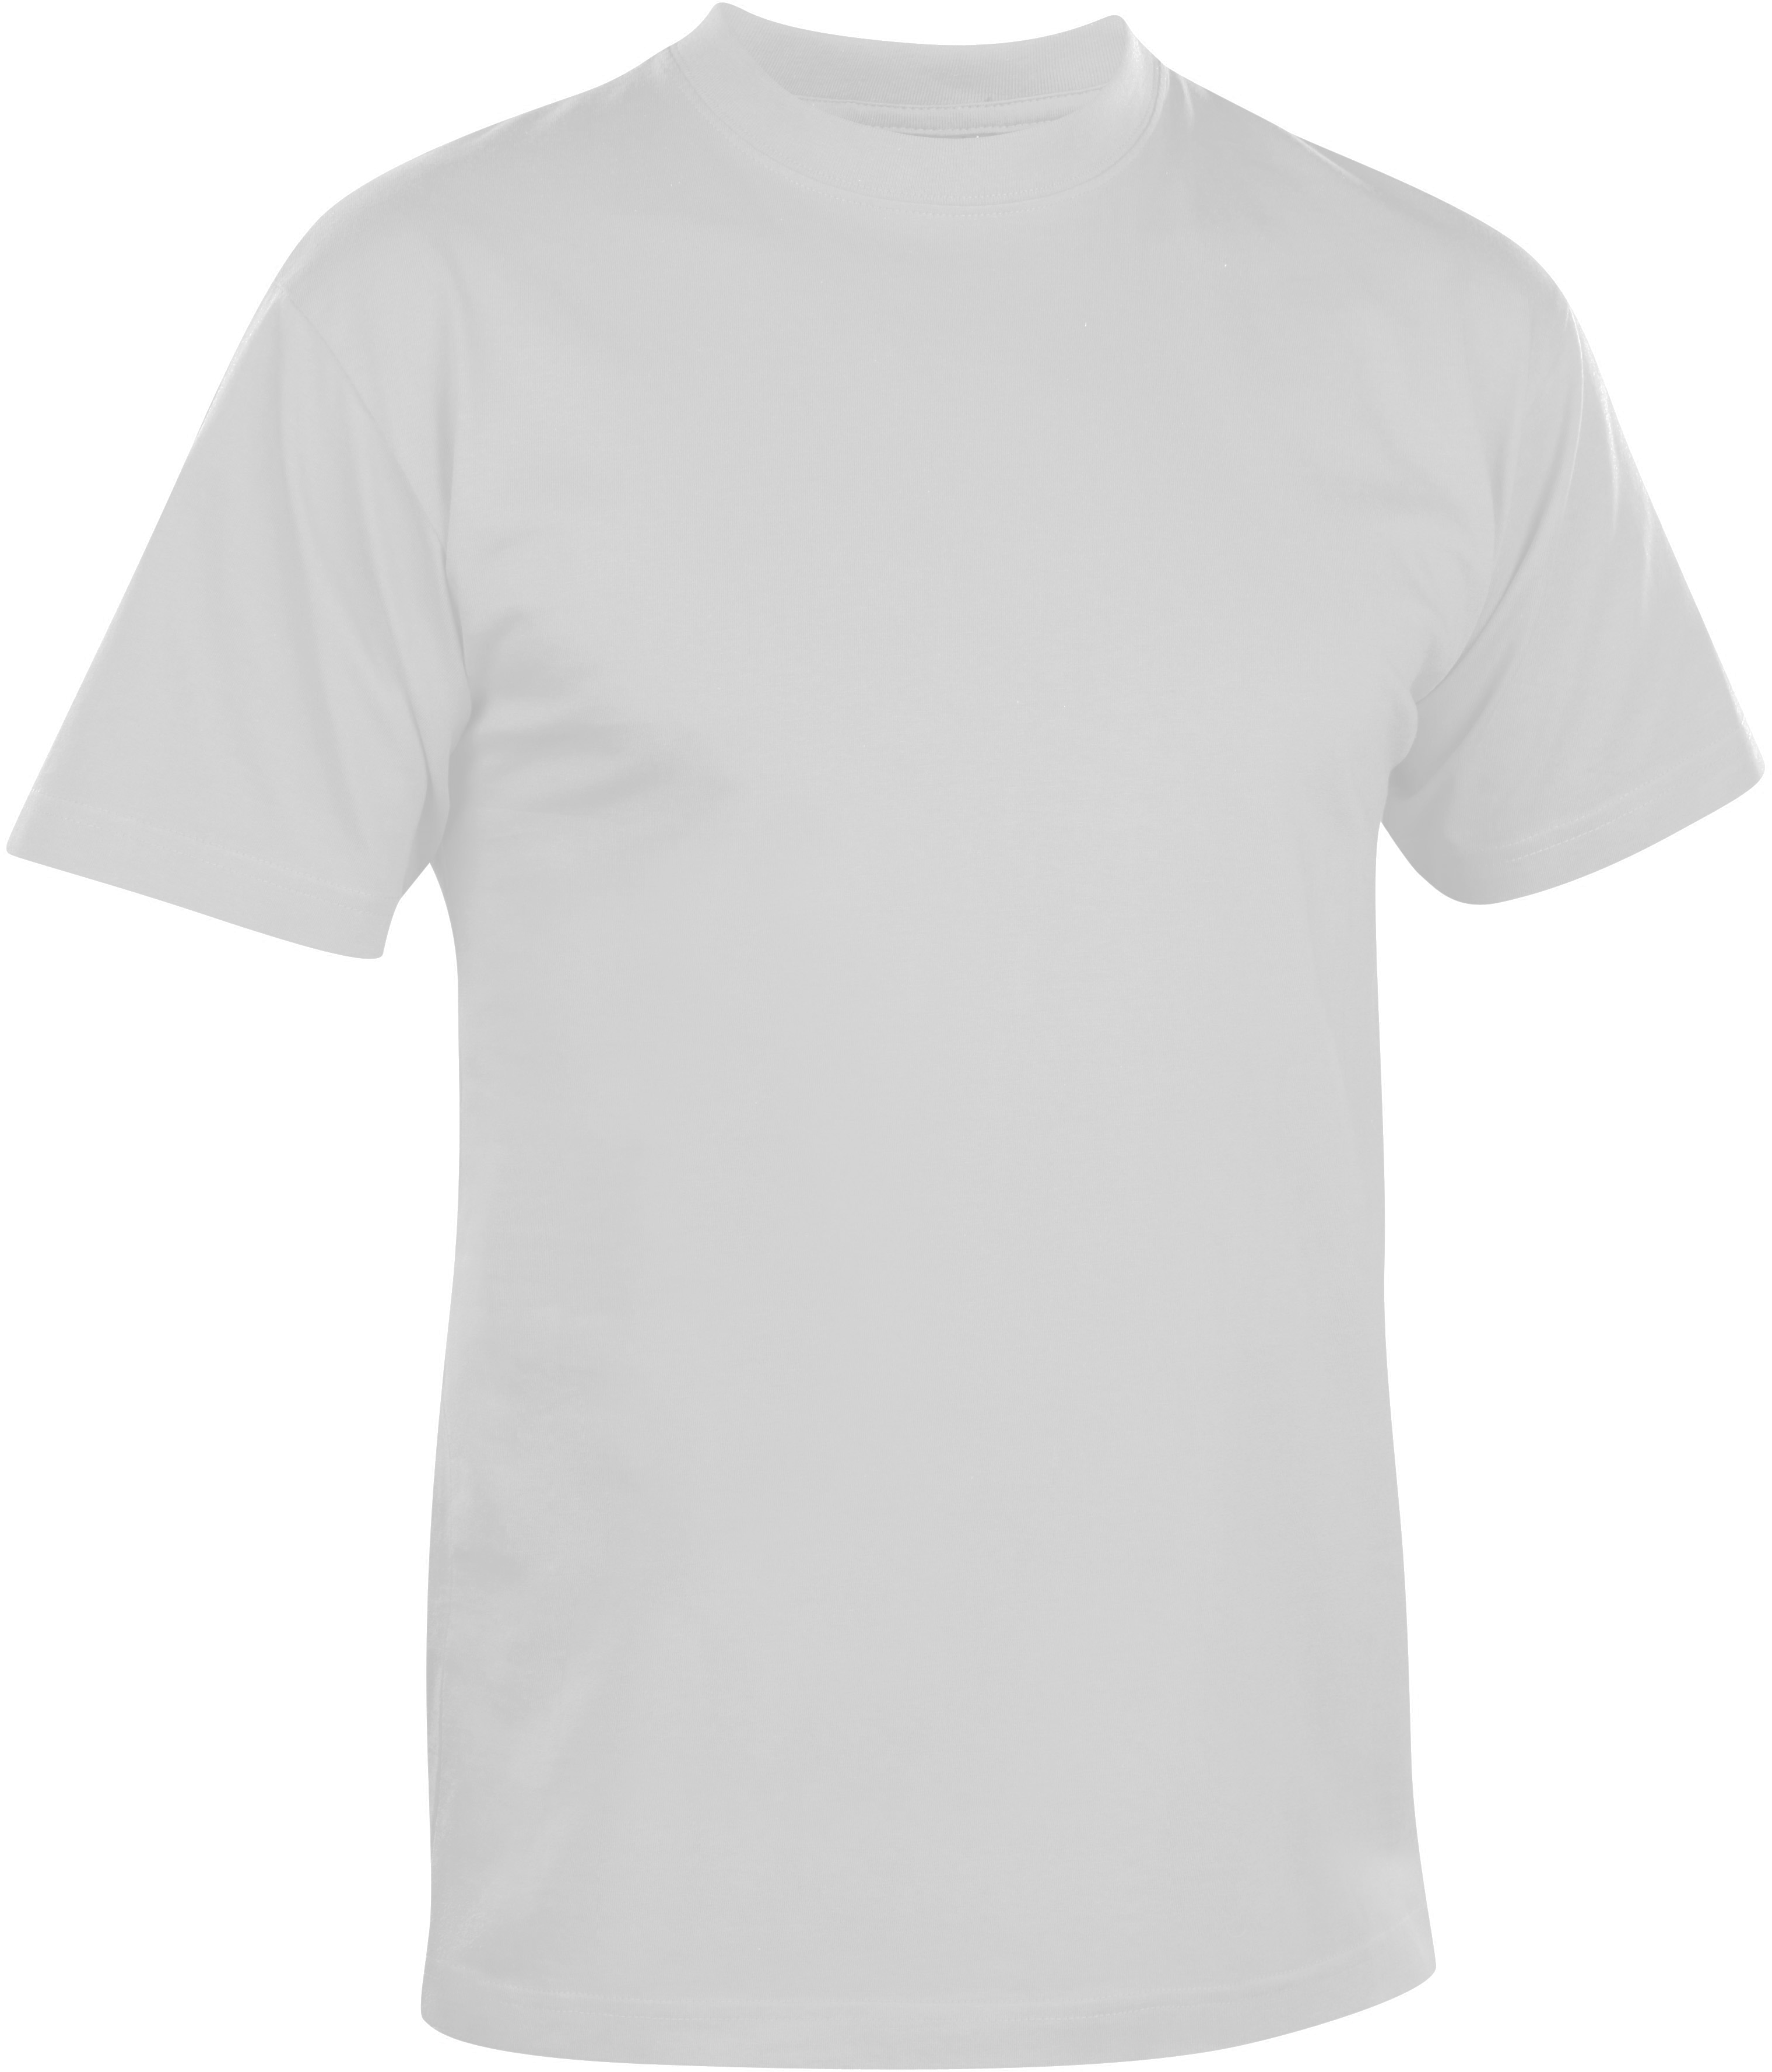 20 White T Shirt Template Png For Free Download On Ya Webdesign